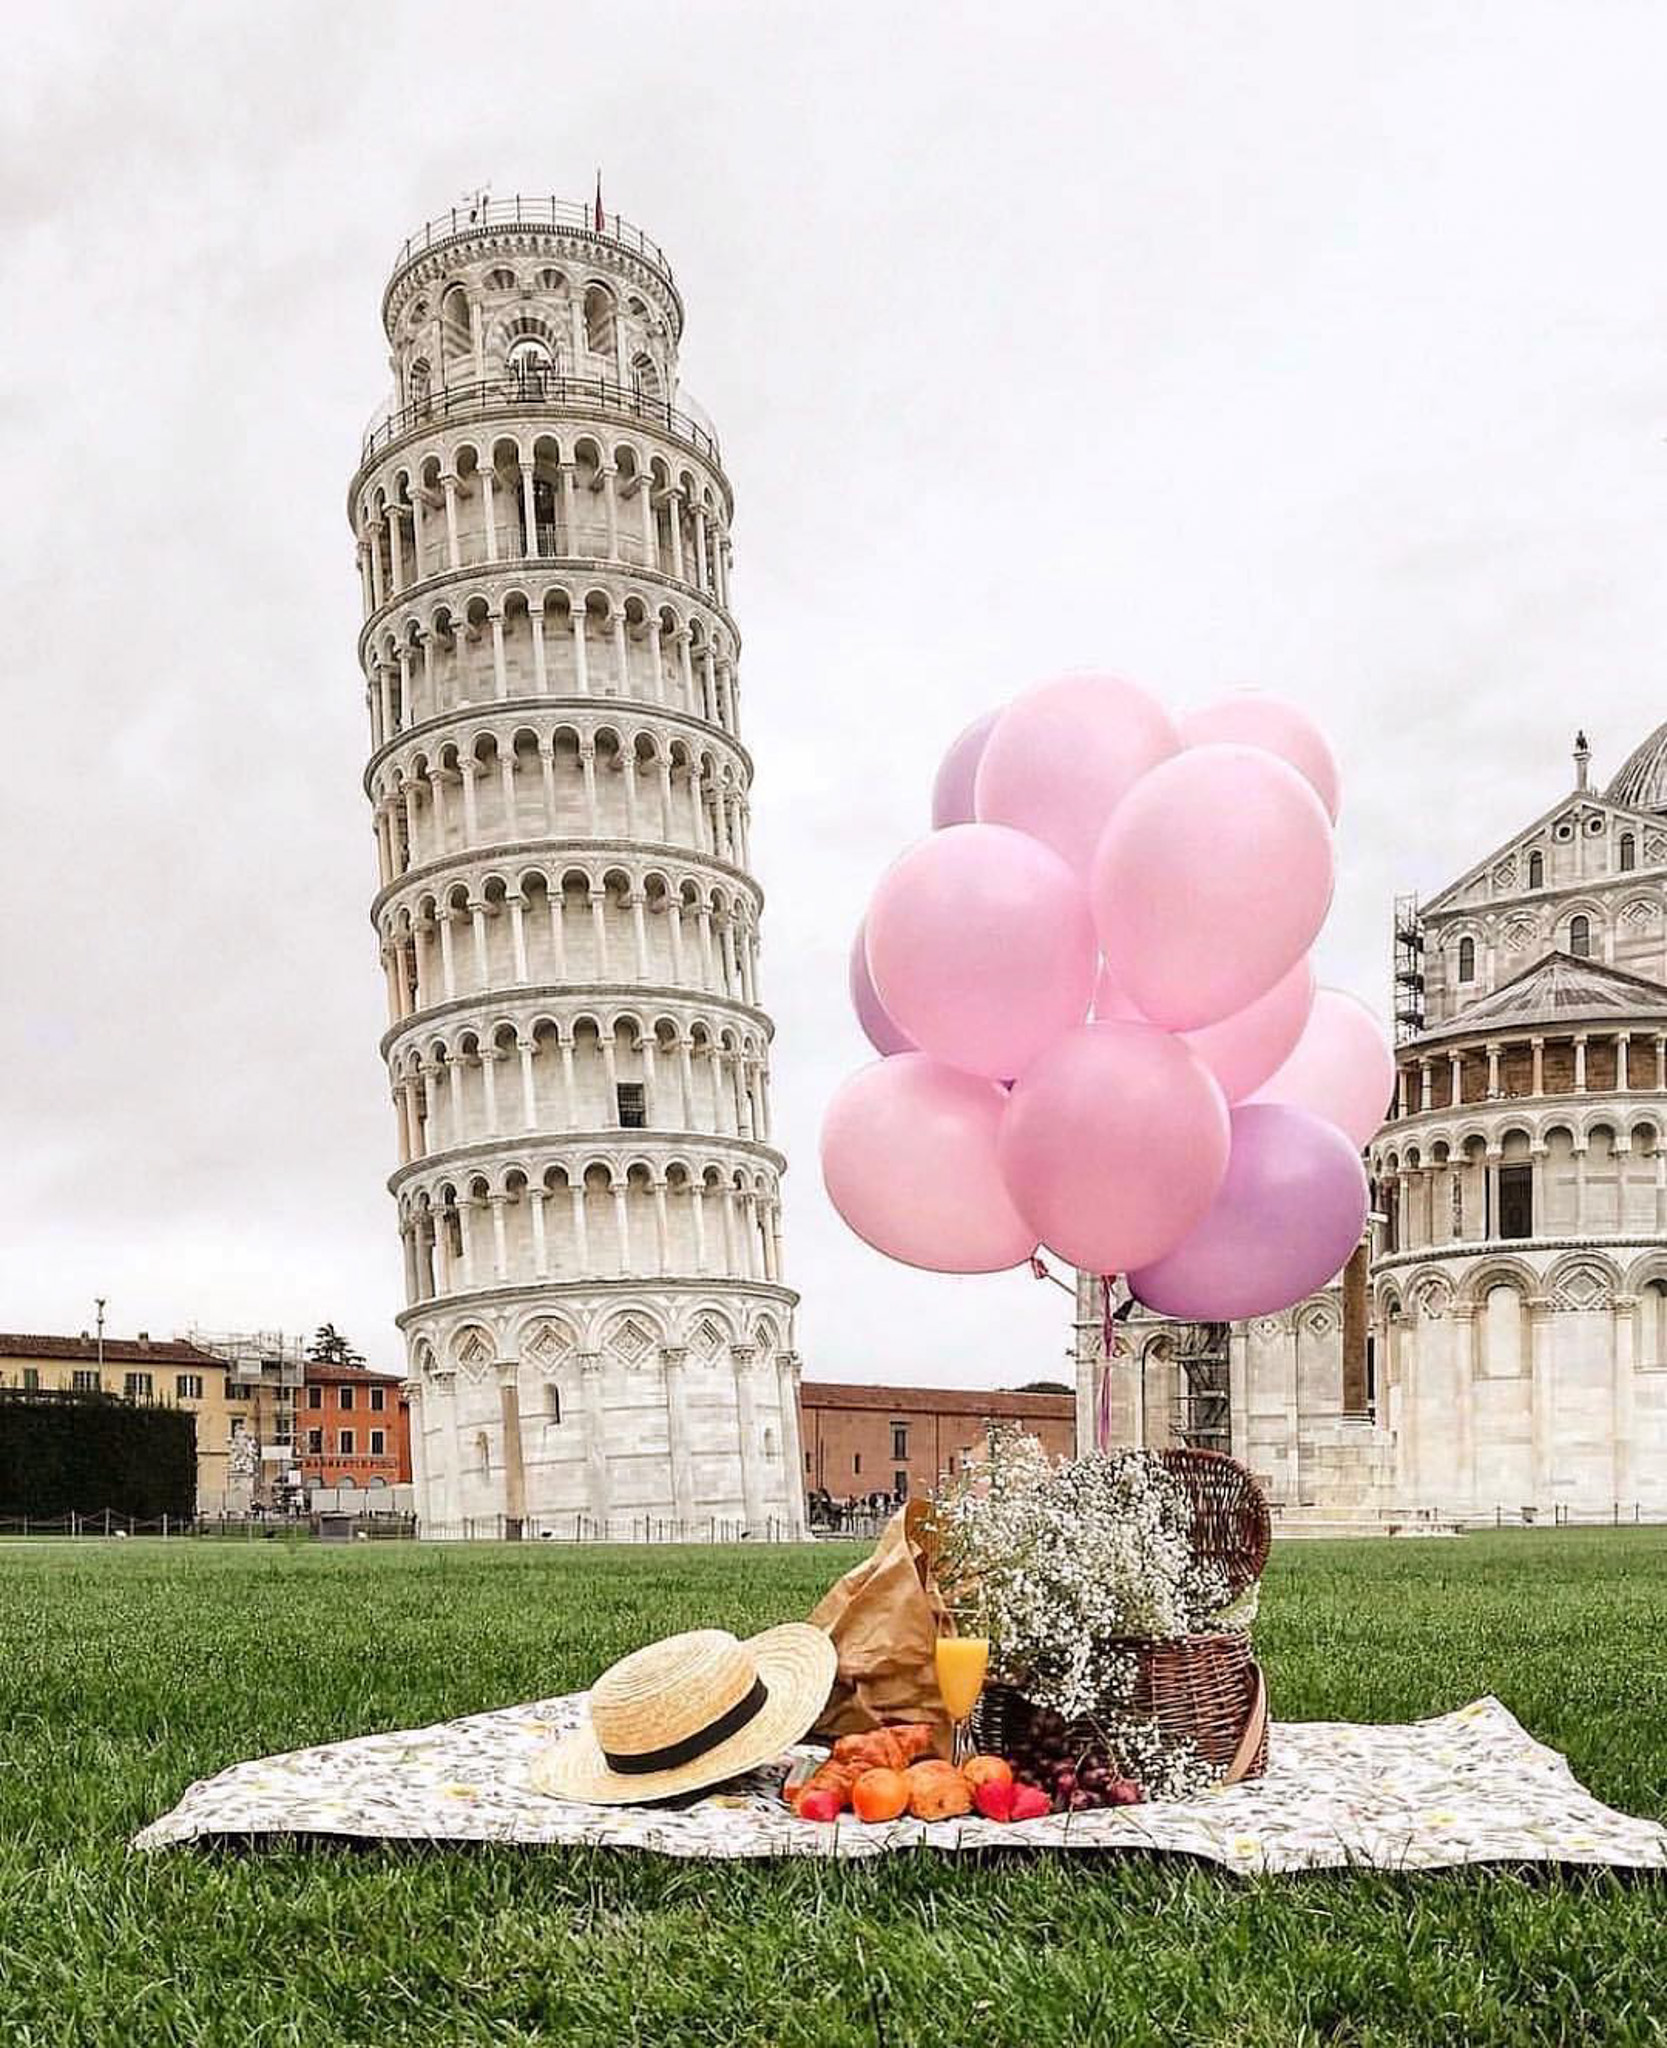 Piazza dei Miracoli, Pisa Tuscany Italy - Balloon, Building, Grass, Happy, Hat, People in nature, Plant, Sky